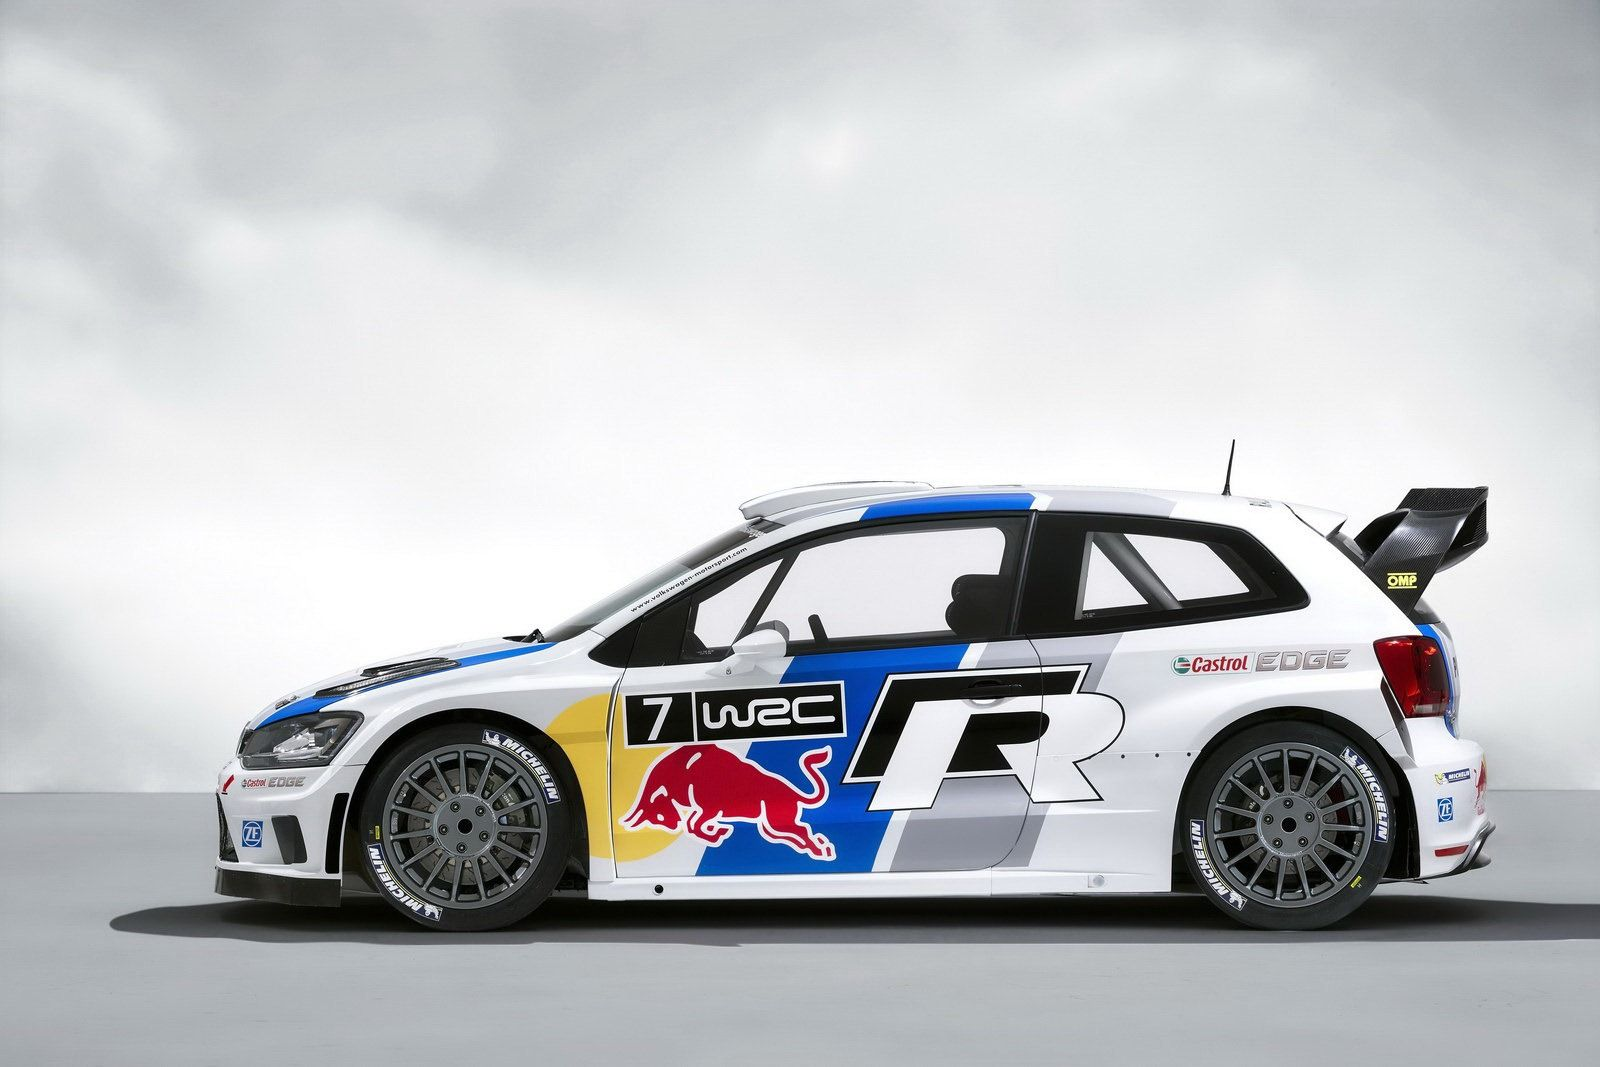 Vw S Polo R Wrc Is A 220hp 33 900 Celebration Of Its Entry Into World Rallying 106 Photos Carscoops Volkswagen Polo Volkswagen Polo Gti Vw Polo